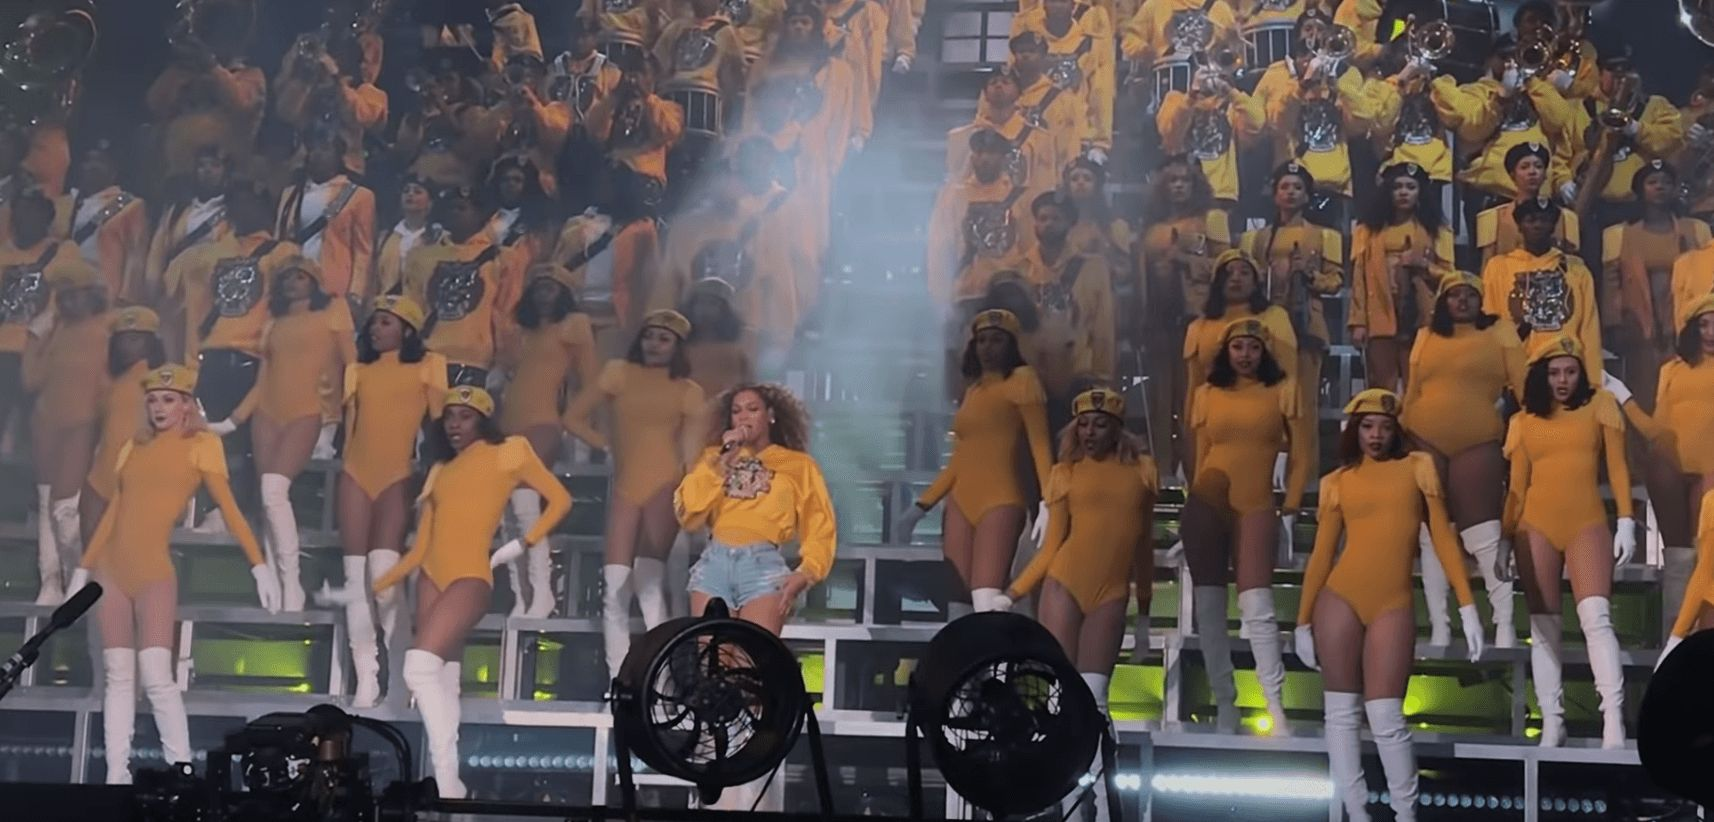 Image may contain: Beyoncé documentary, Beyonce, Netflix, Homecoming, Coachella 2018, news, release date, trailer, pictures, cast, Vehicle, Transportation, People, Crowd, Vacation, Furniture, Chair, Person, Human